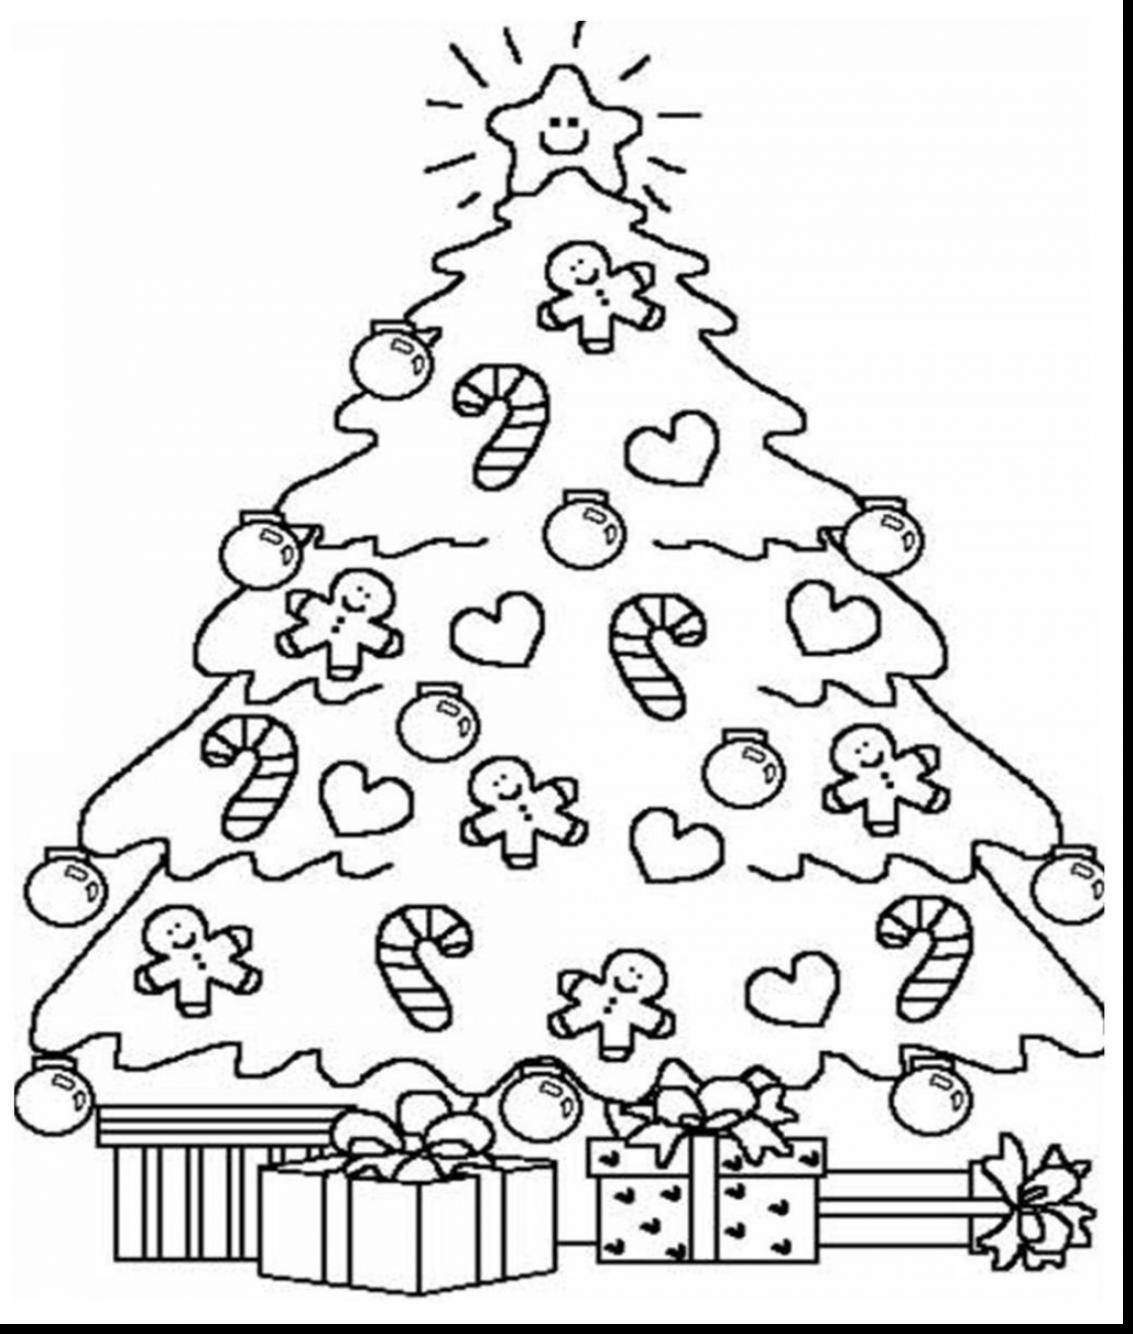 Adult Christmas Tree Coloring Pages At Getcolorings